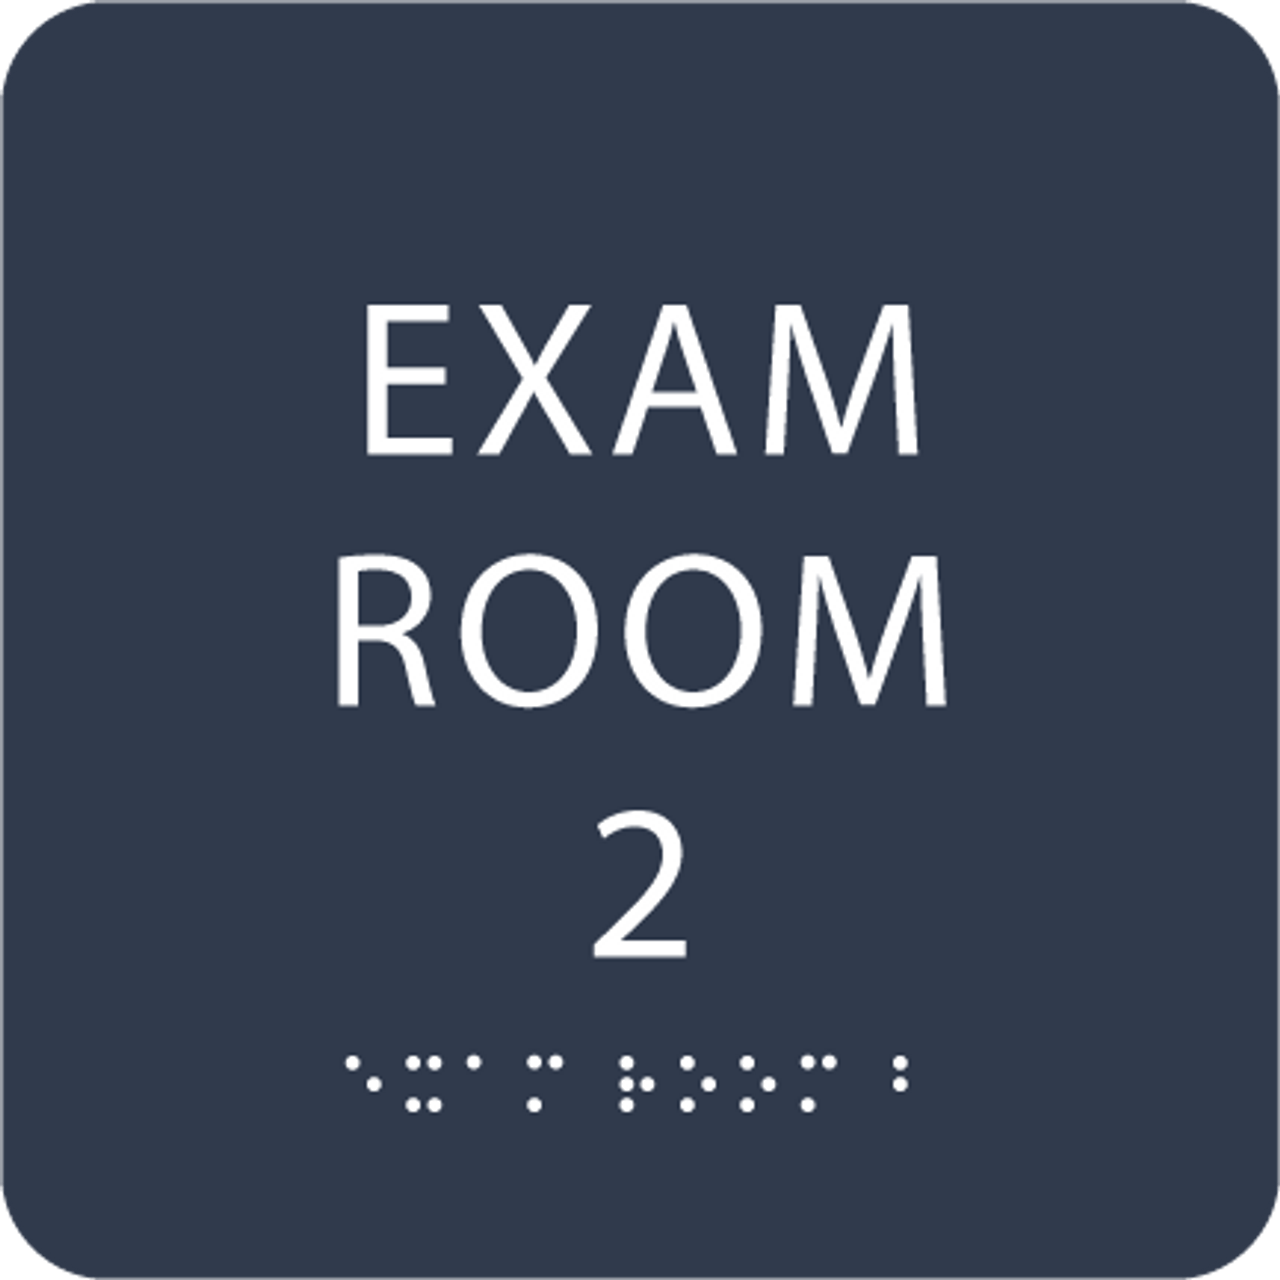 Navy ADA Exam Room 2 Sign with Braille